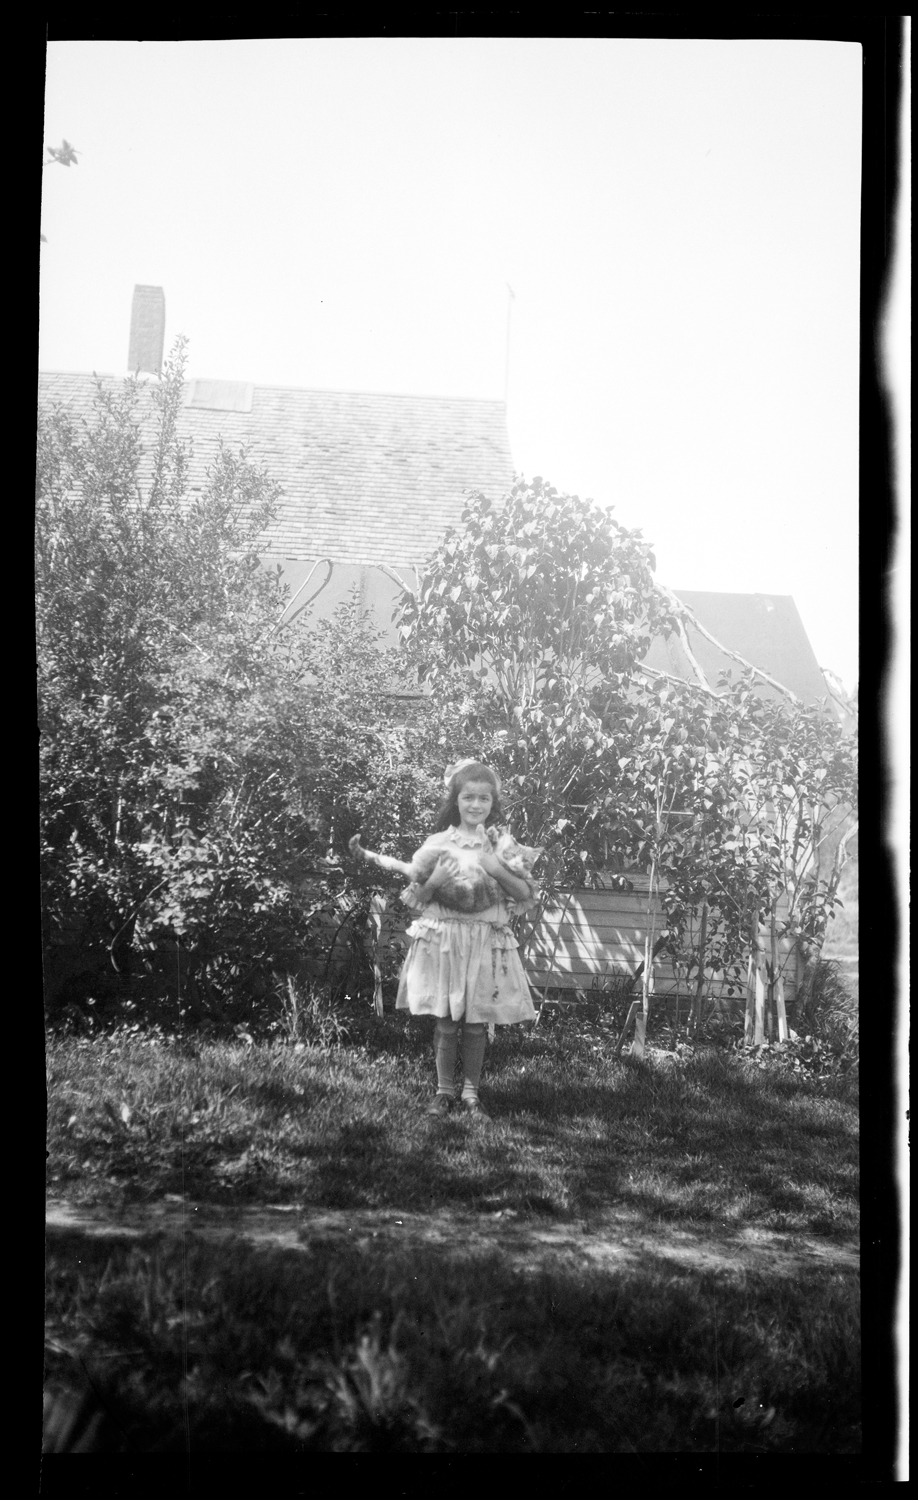 Norma Drew holding a cat, around 1925